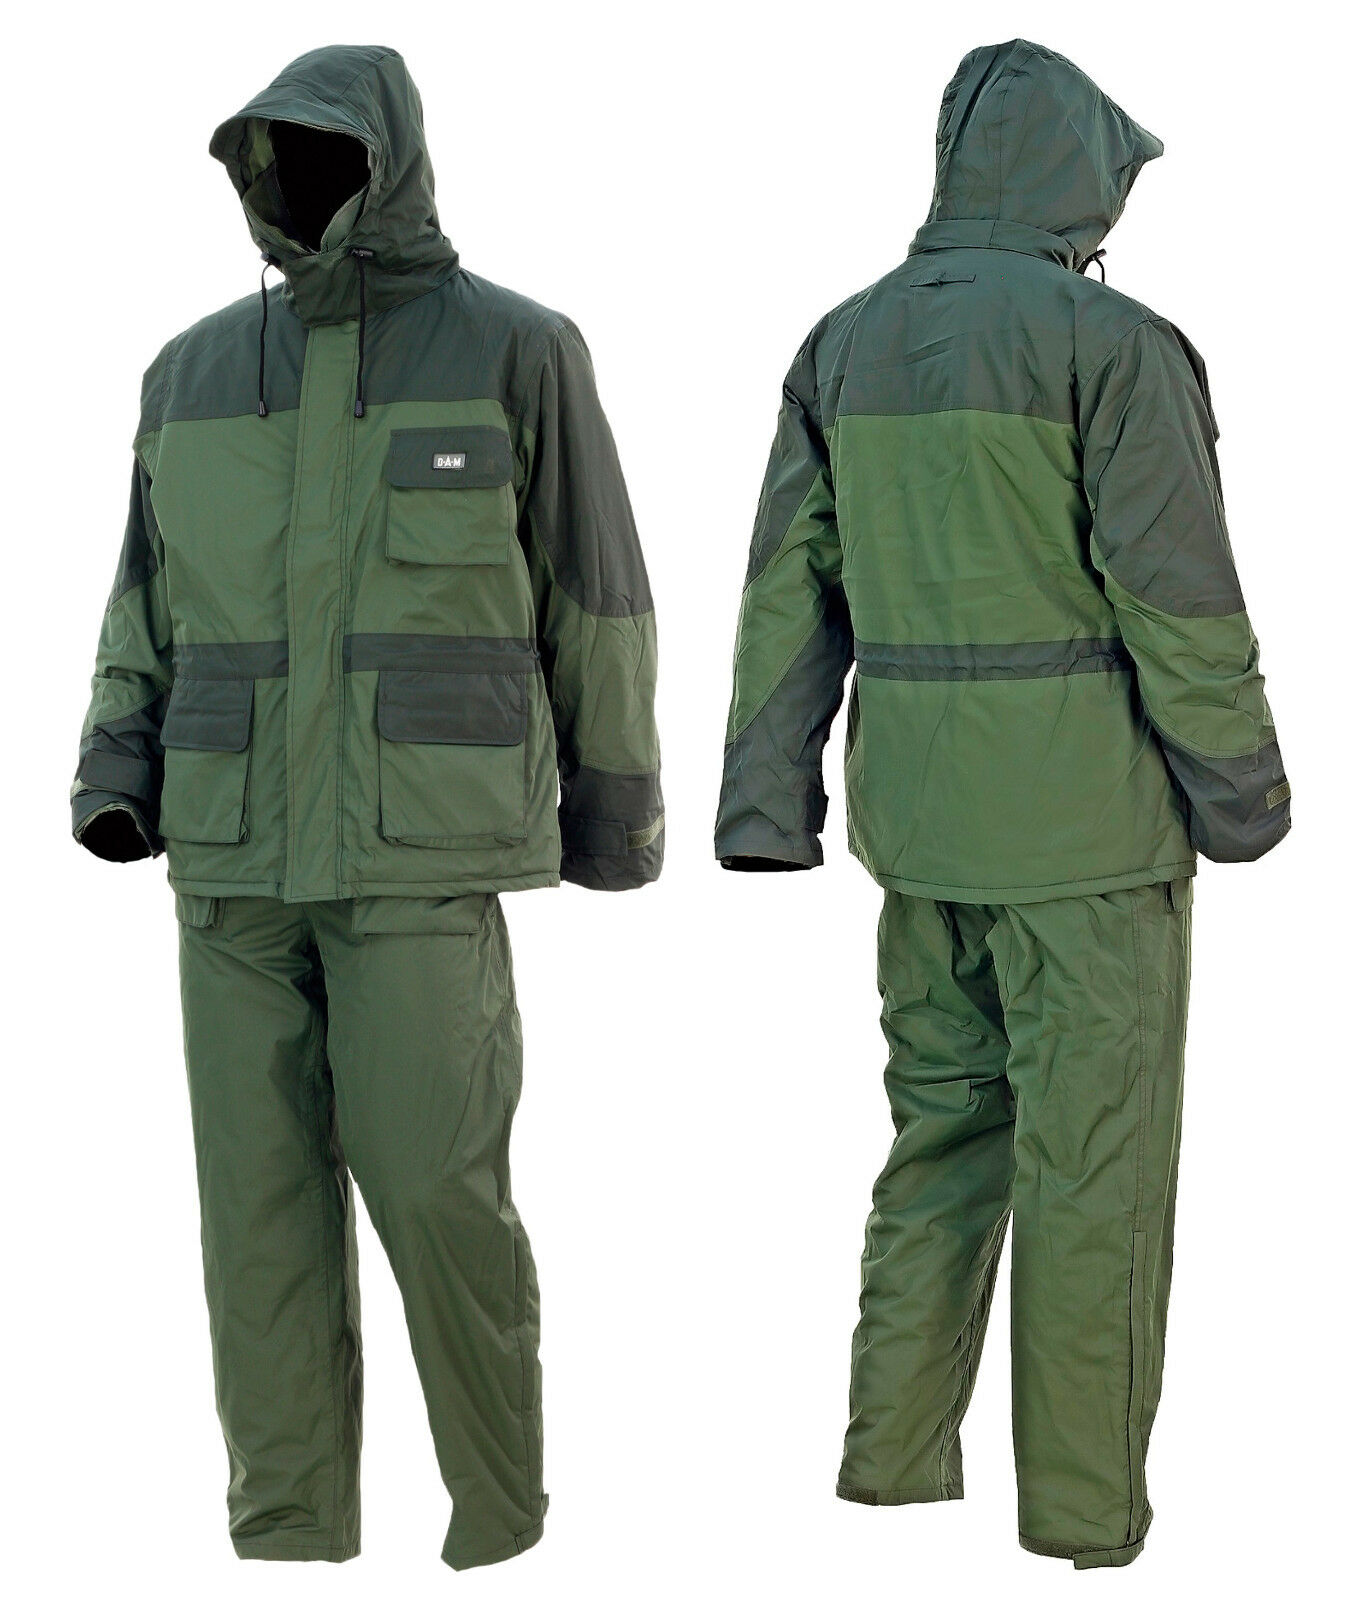 Dam Dura Therm Suit Thermal Suit Size Selectable 100% Wind- & Waterproof